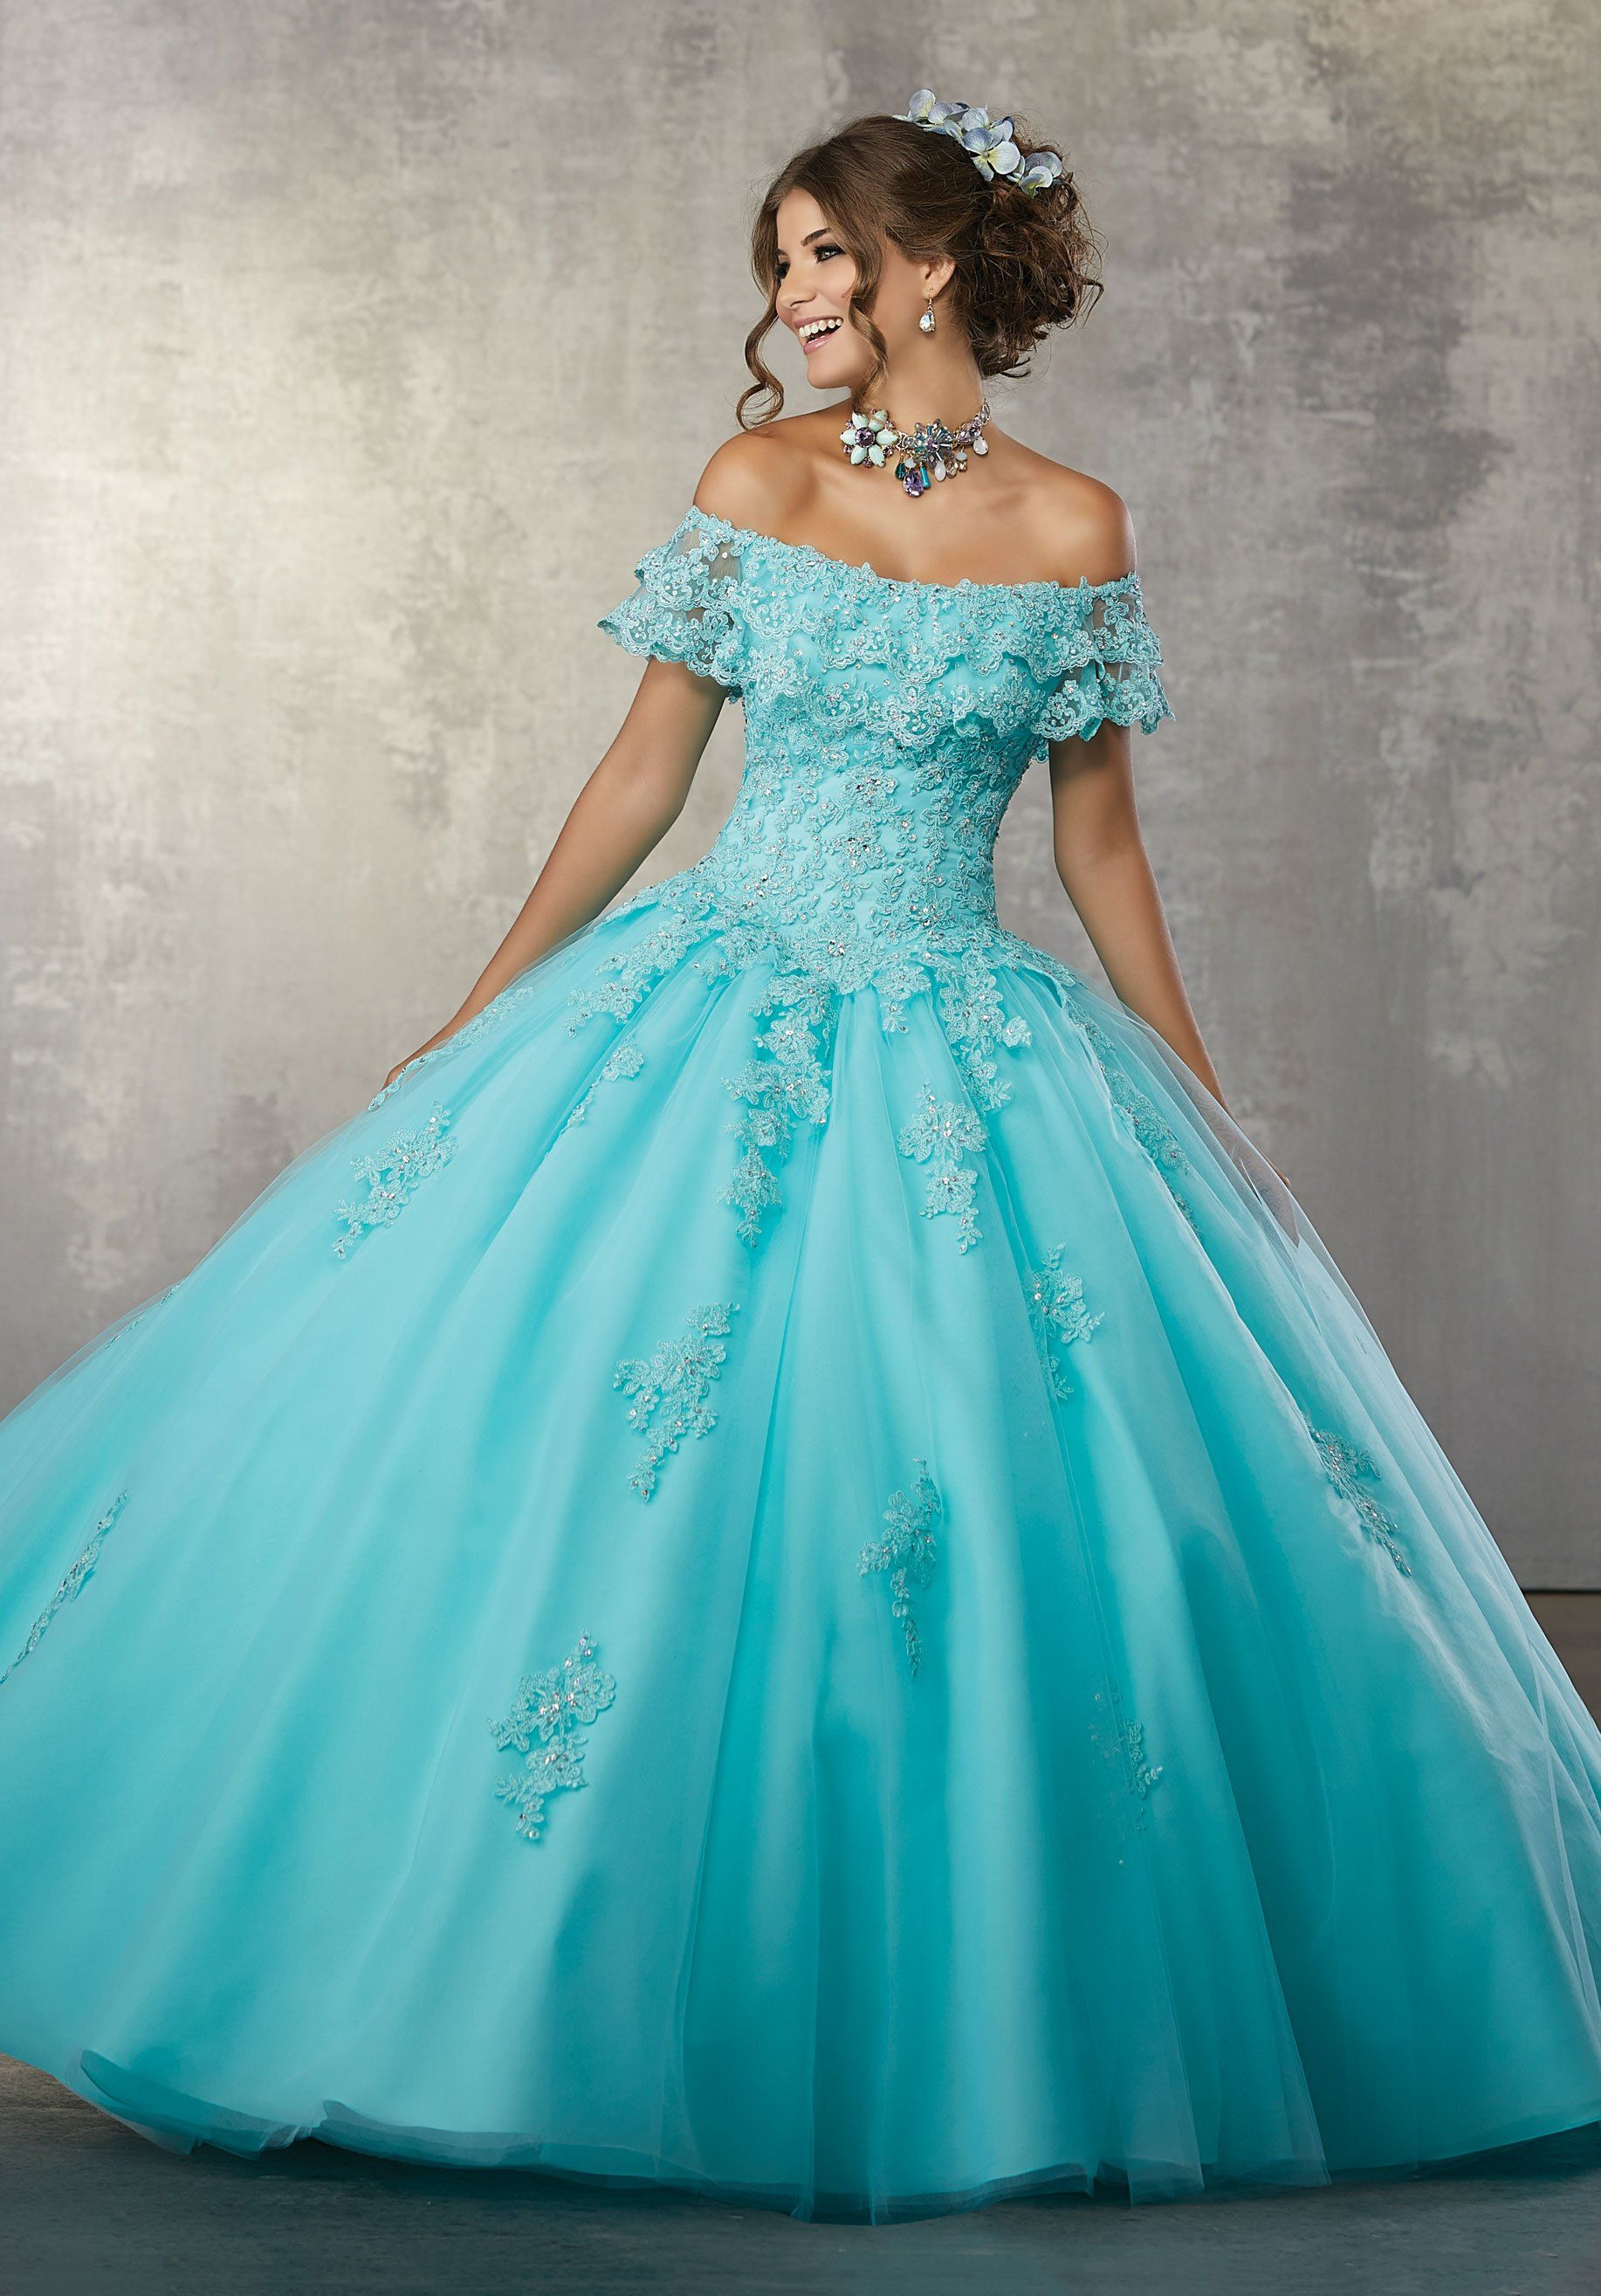 c2a609205a9 Off Shoulder Lace Quinceanera Dress by Mori Lee Vizcaya 89168 ...